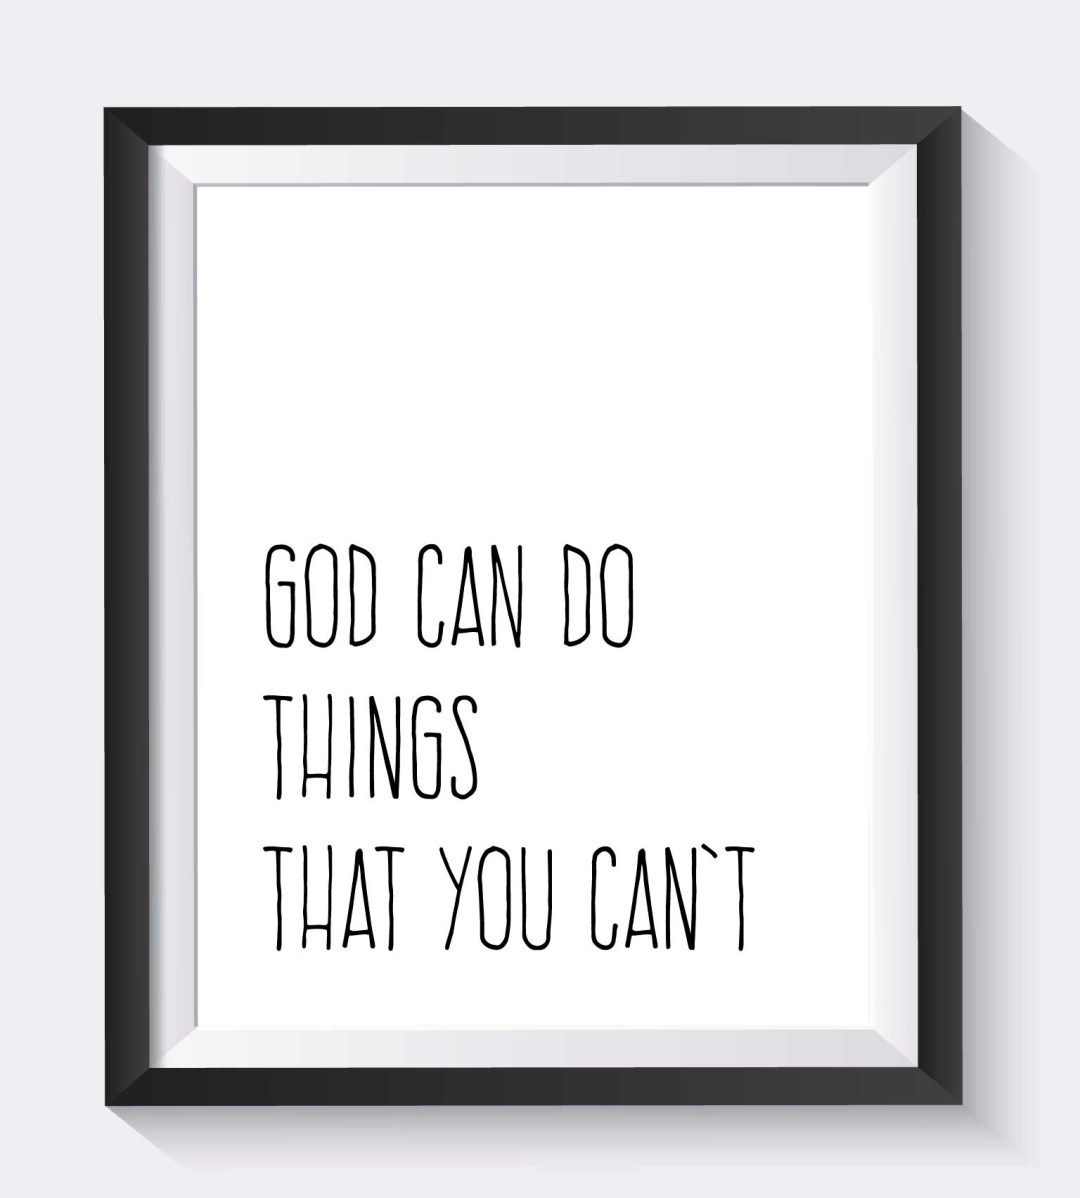 Get your FREE 8x10 PRINTABLE: God can do things that you can't (Let Go and Trust in God)